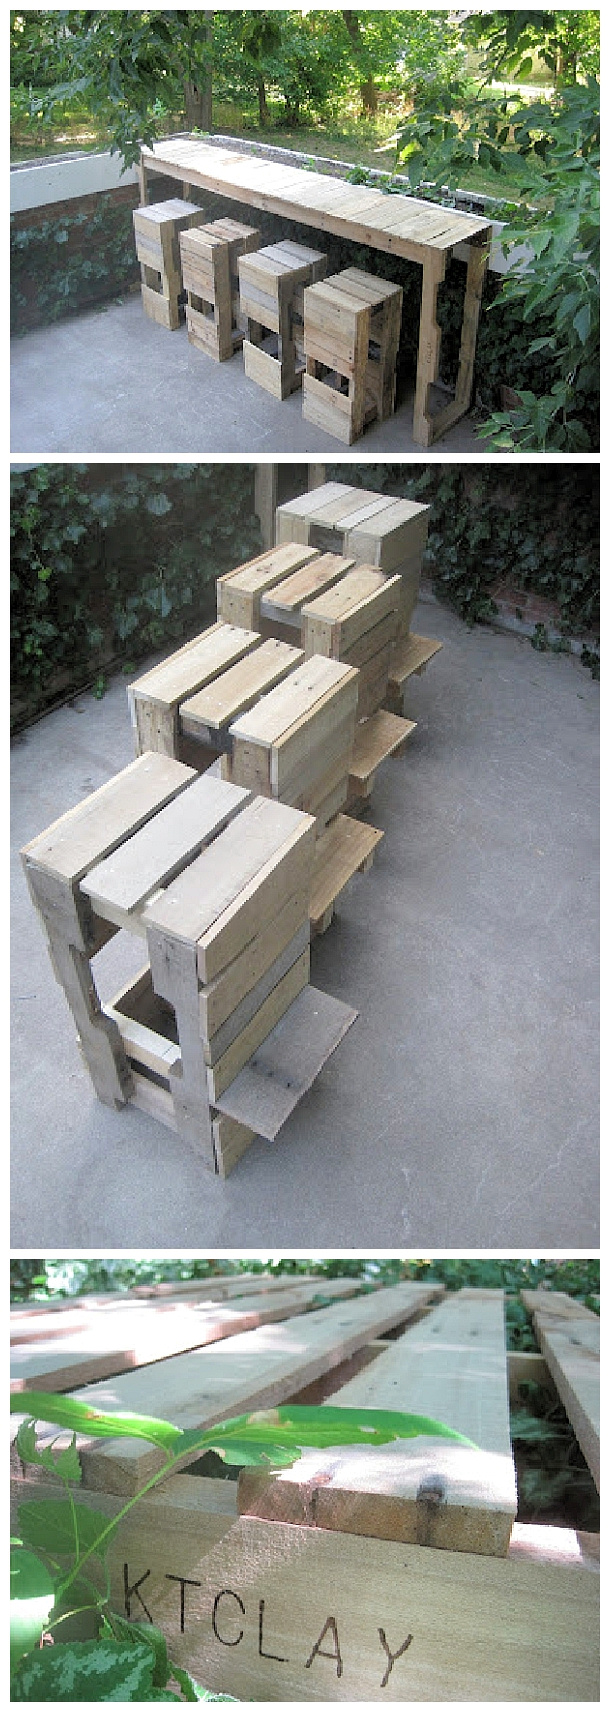 DIY Pallet Projects - Do it Yourself Pallet Bar Table with Stools with Footrests Woodworking Upcycle Tutorial via Stacked Design #easypalletprojects #beginnerwoodworking #easywoodworkingtutorials #woodworkingtutorials #DIYprojects #easyDIYprojects #diyhomedecor #diyfurniture